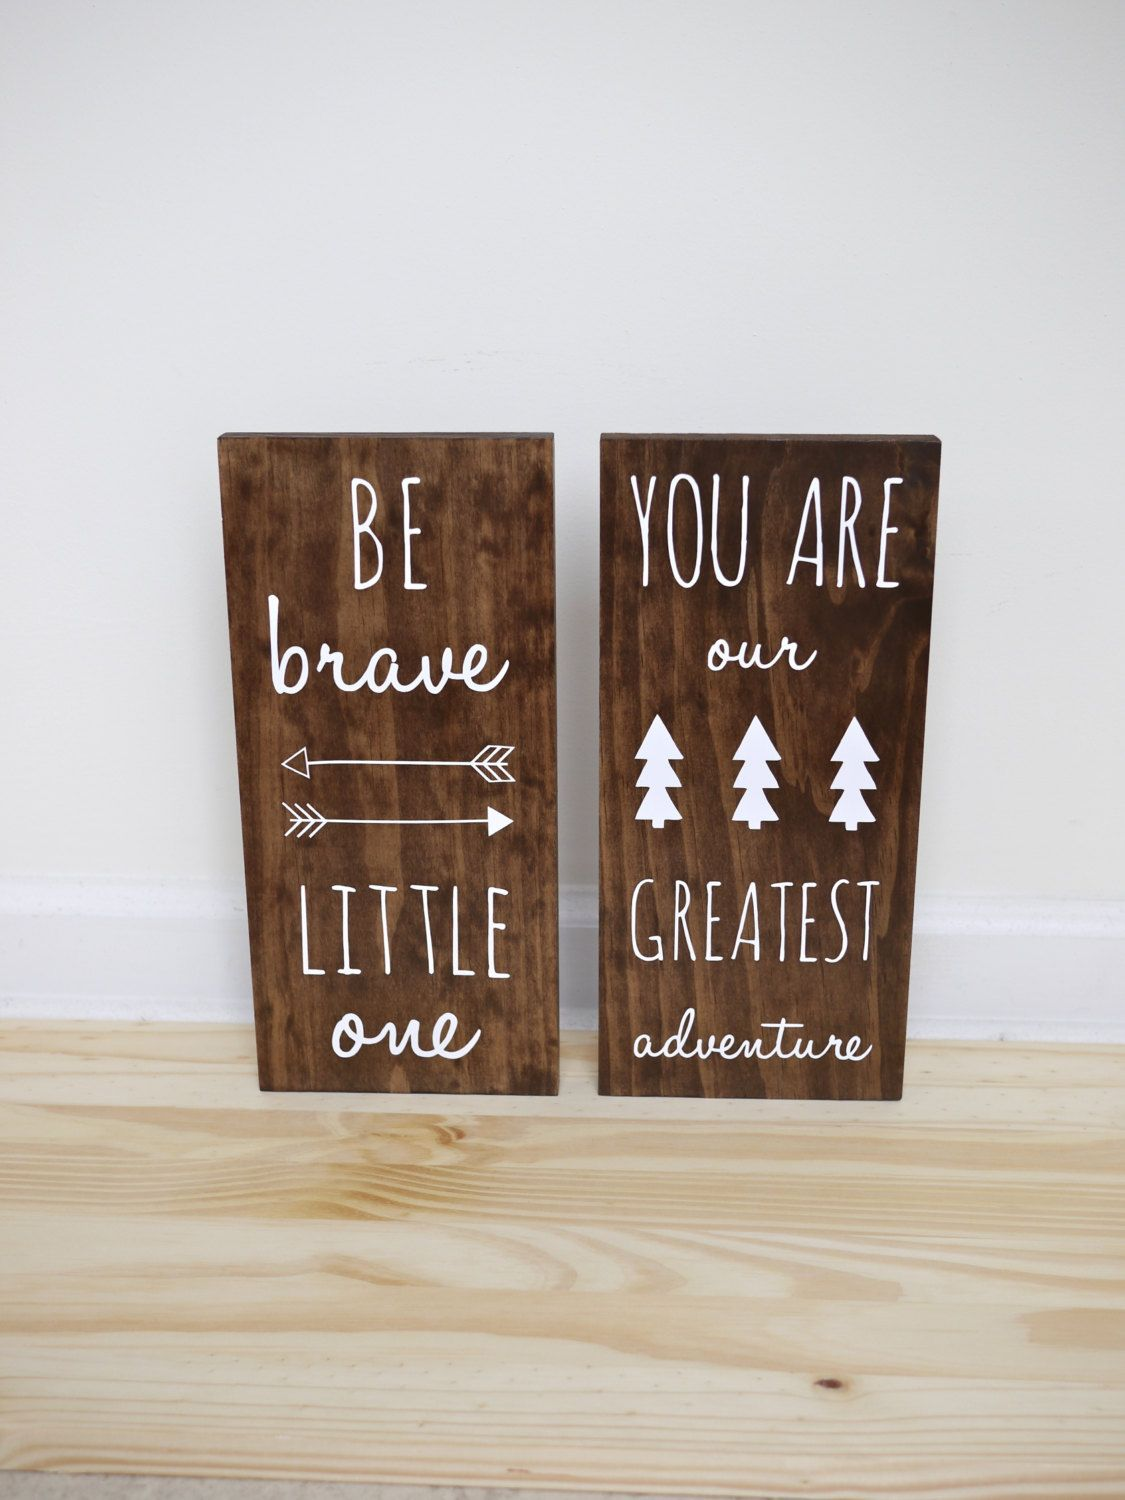 woodland nursery be brave little one and you are our greatest adventure set of 2 - Etsy Baby Room